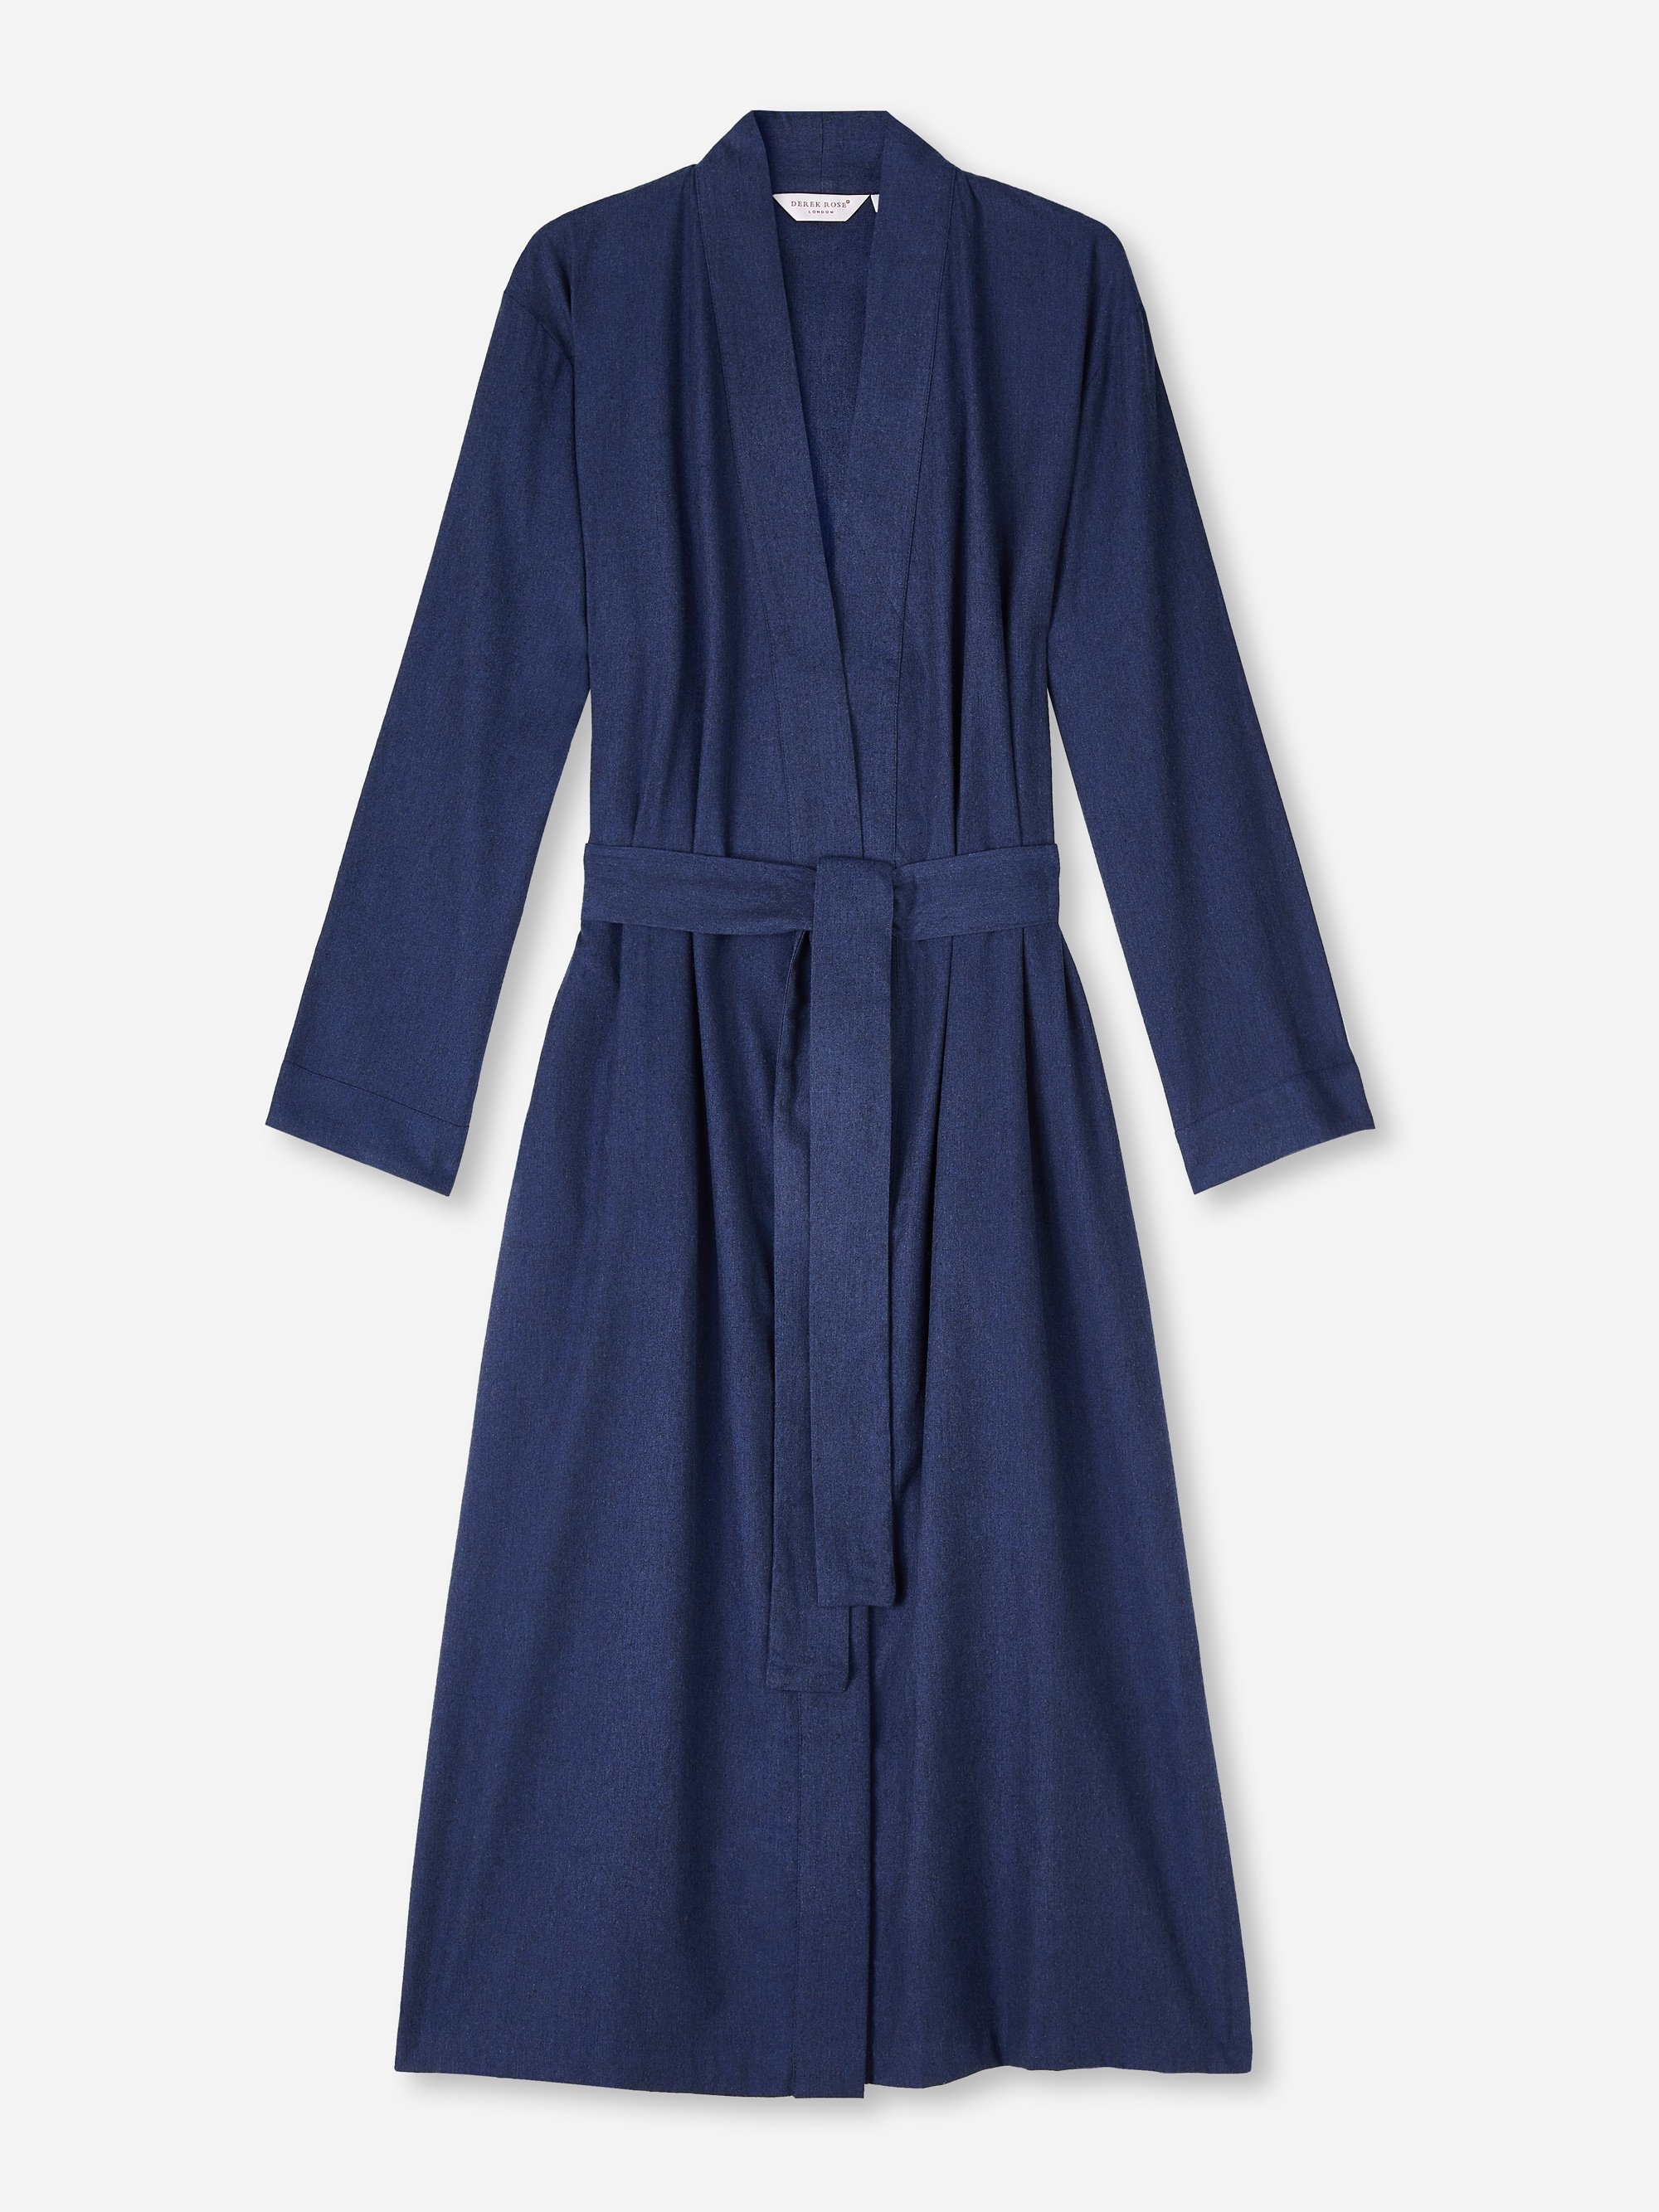 Women's Mid Length Dressing Gown Balmoral 3 Brushed Cotton Navy